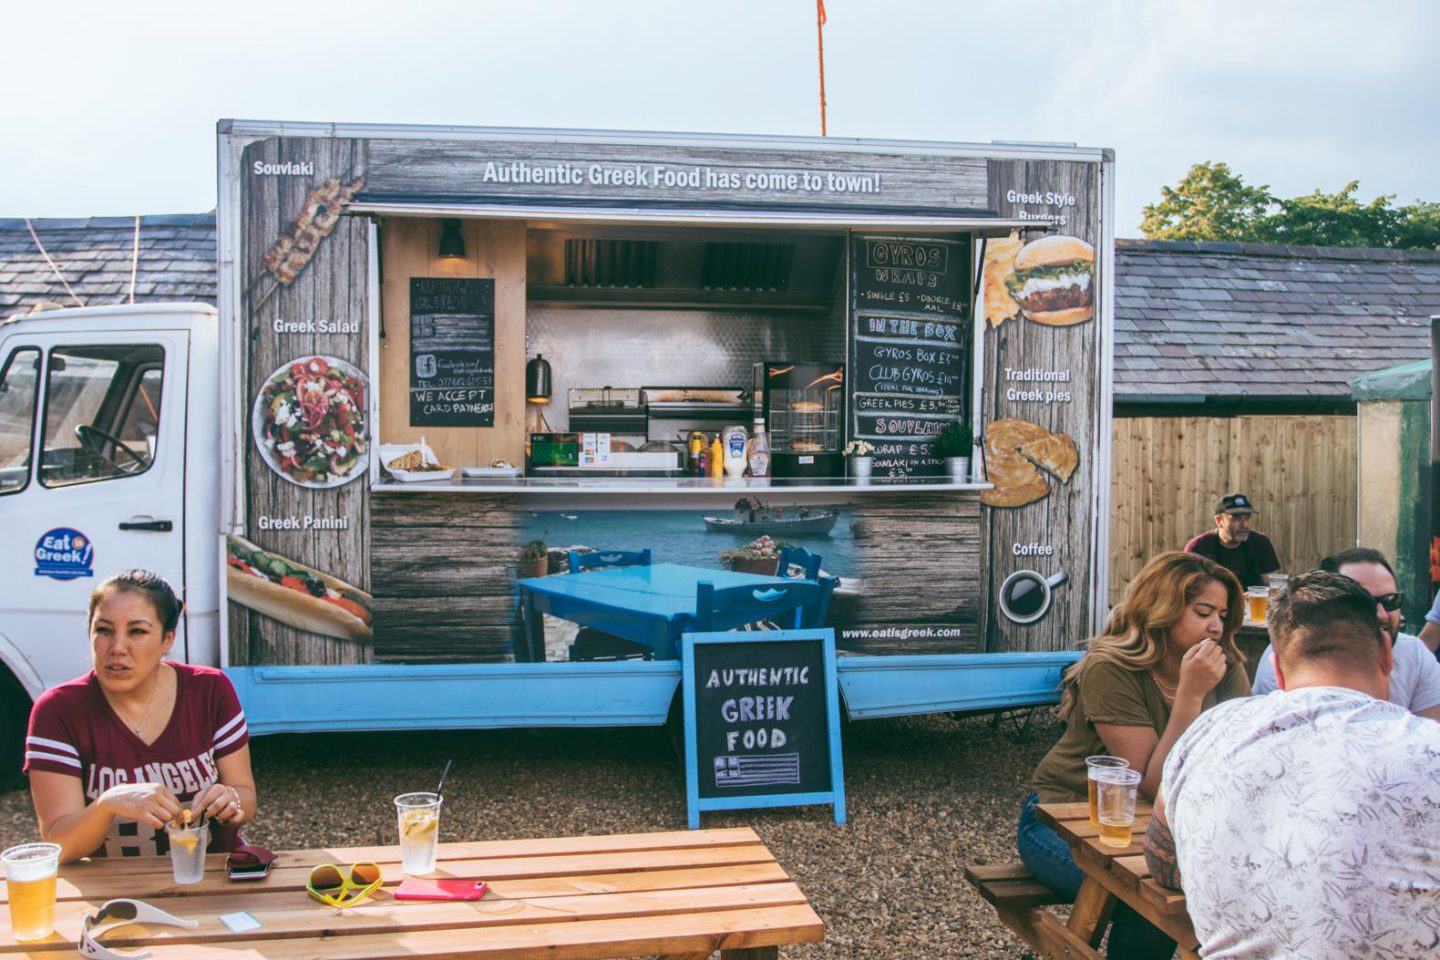 Days out in Milton Keynes: MK11 Beer and Street Food Festival